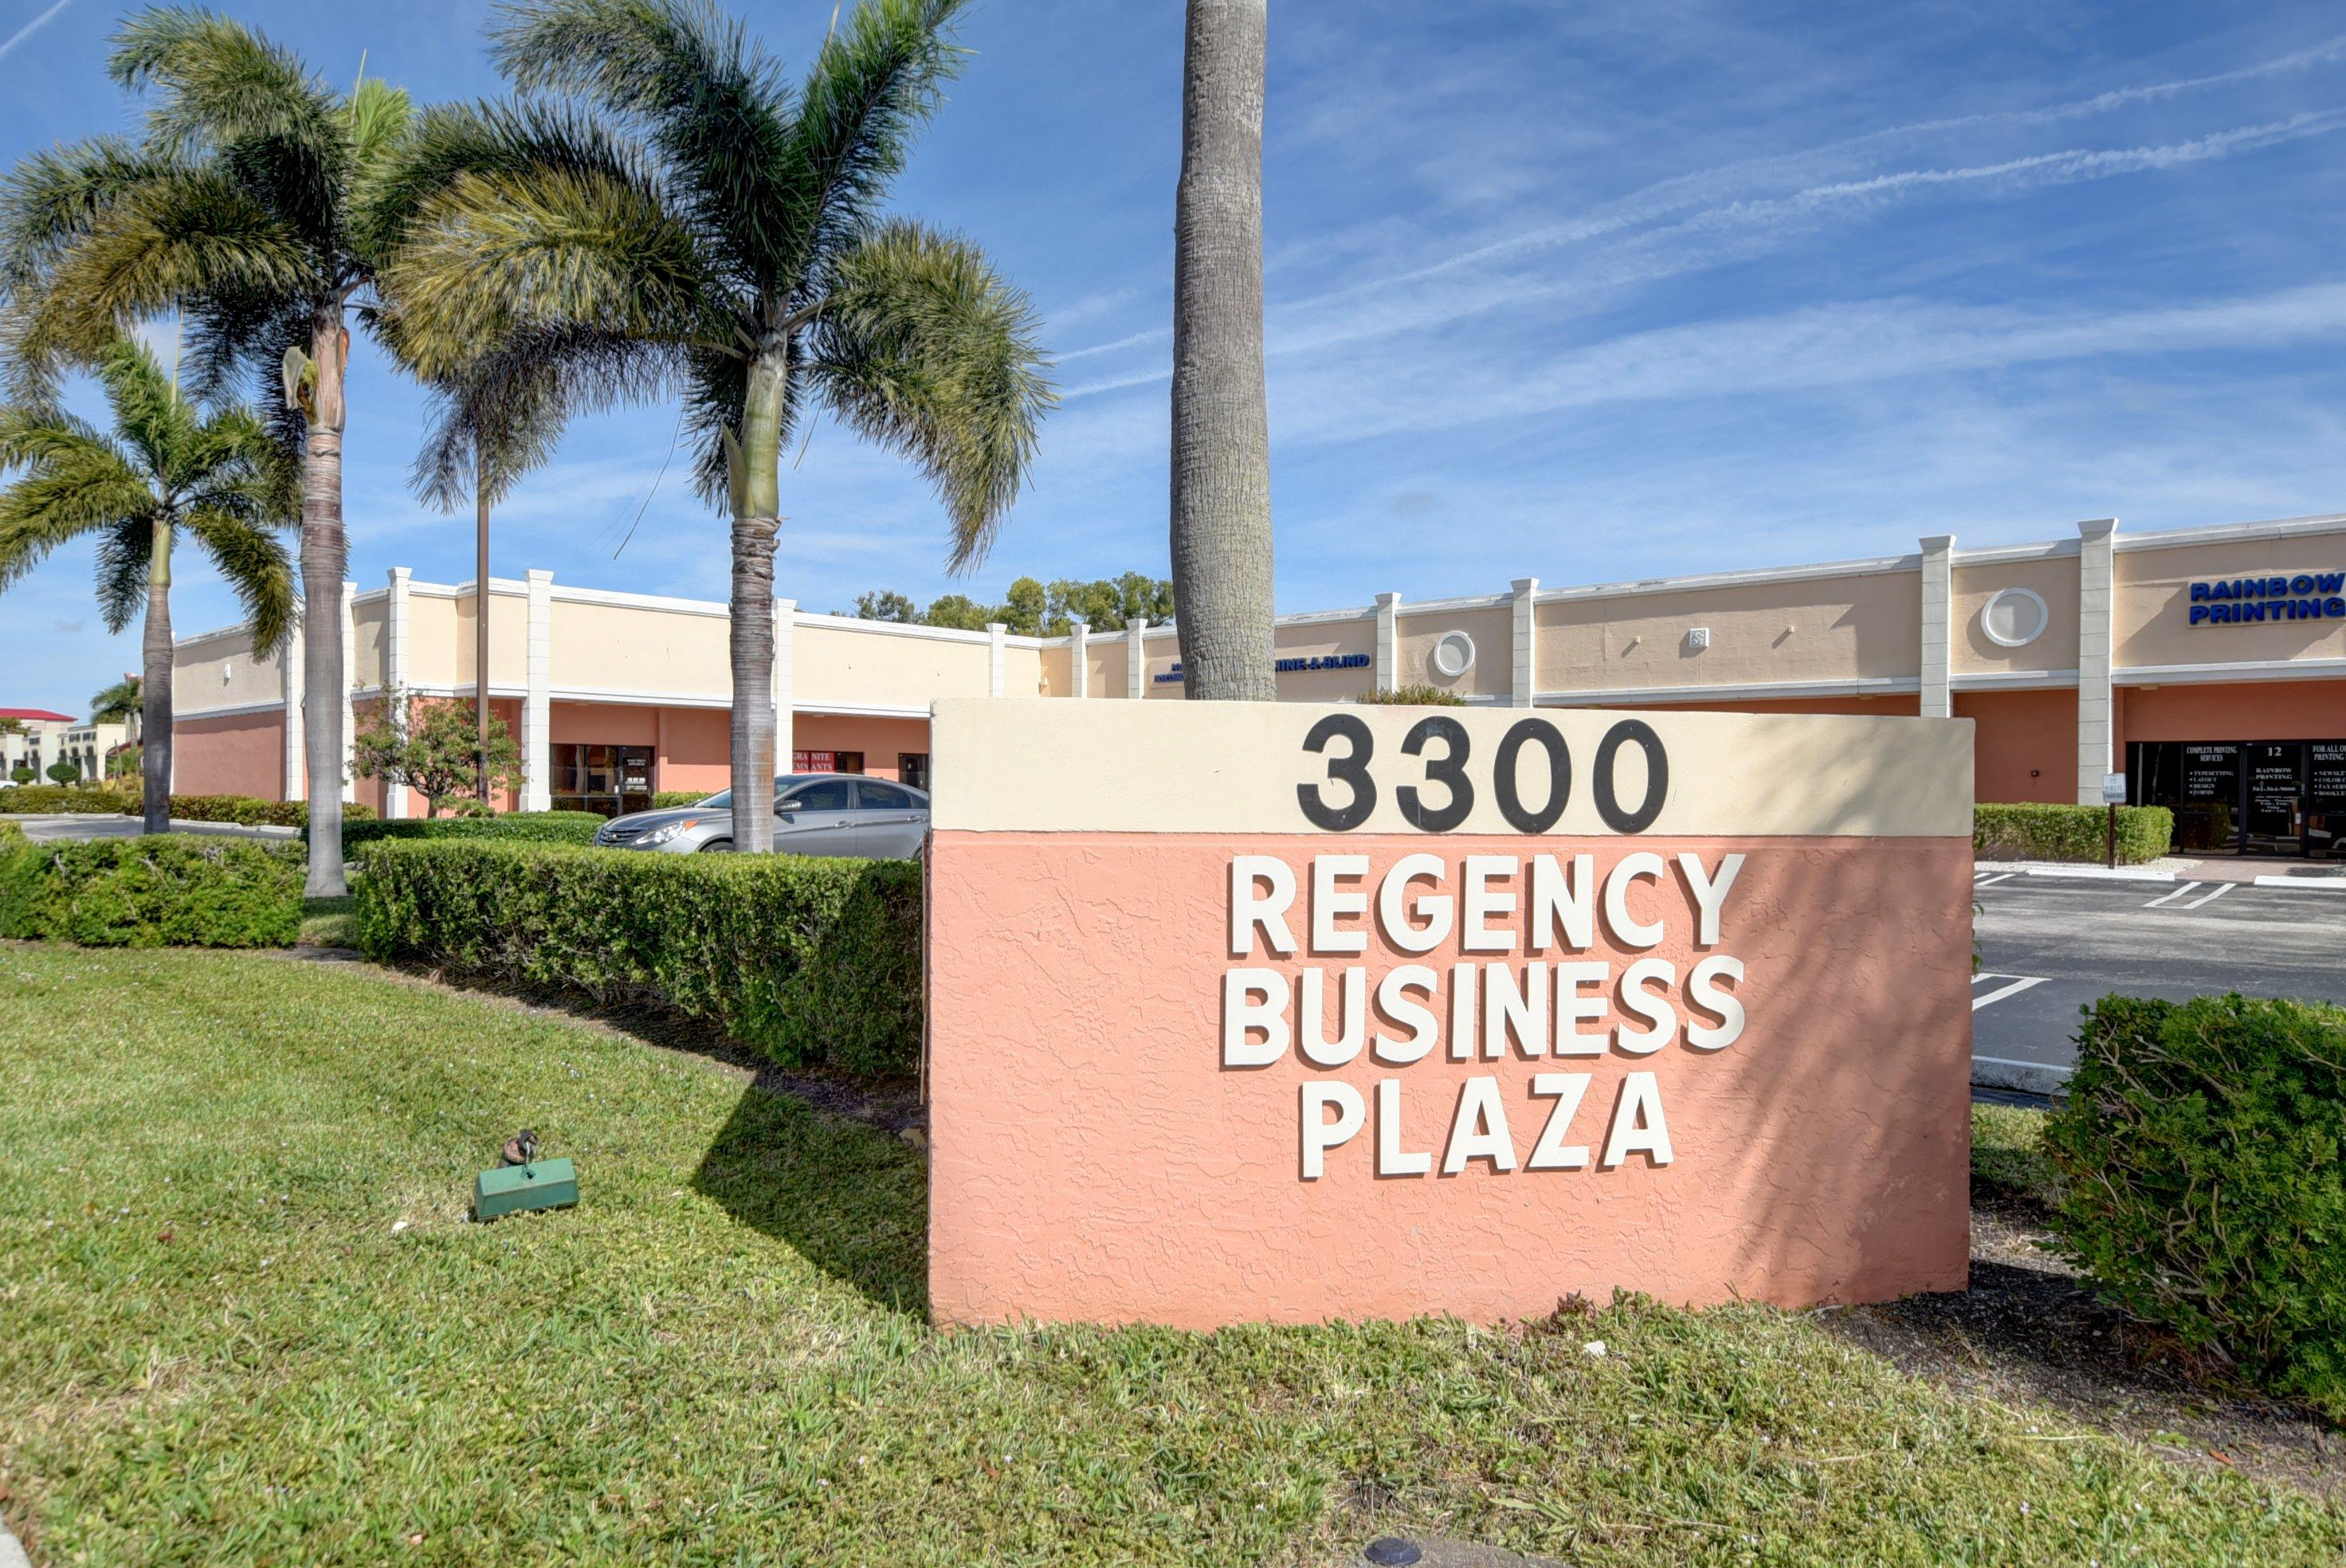 3300 S Congress, Boynton Beach, Florida 33426